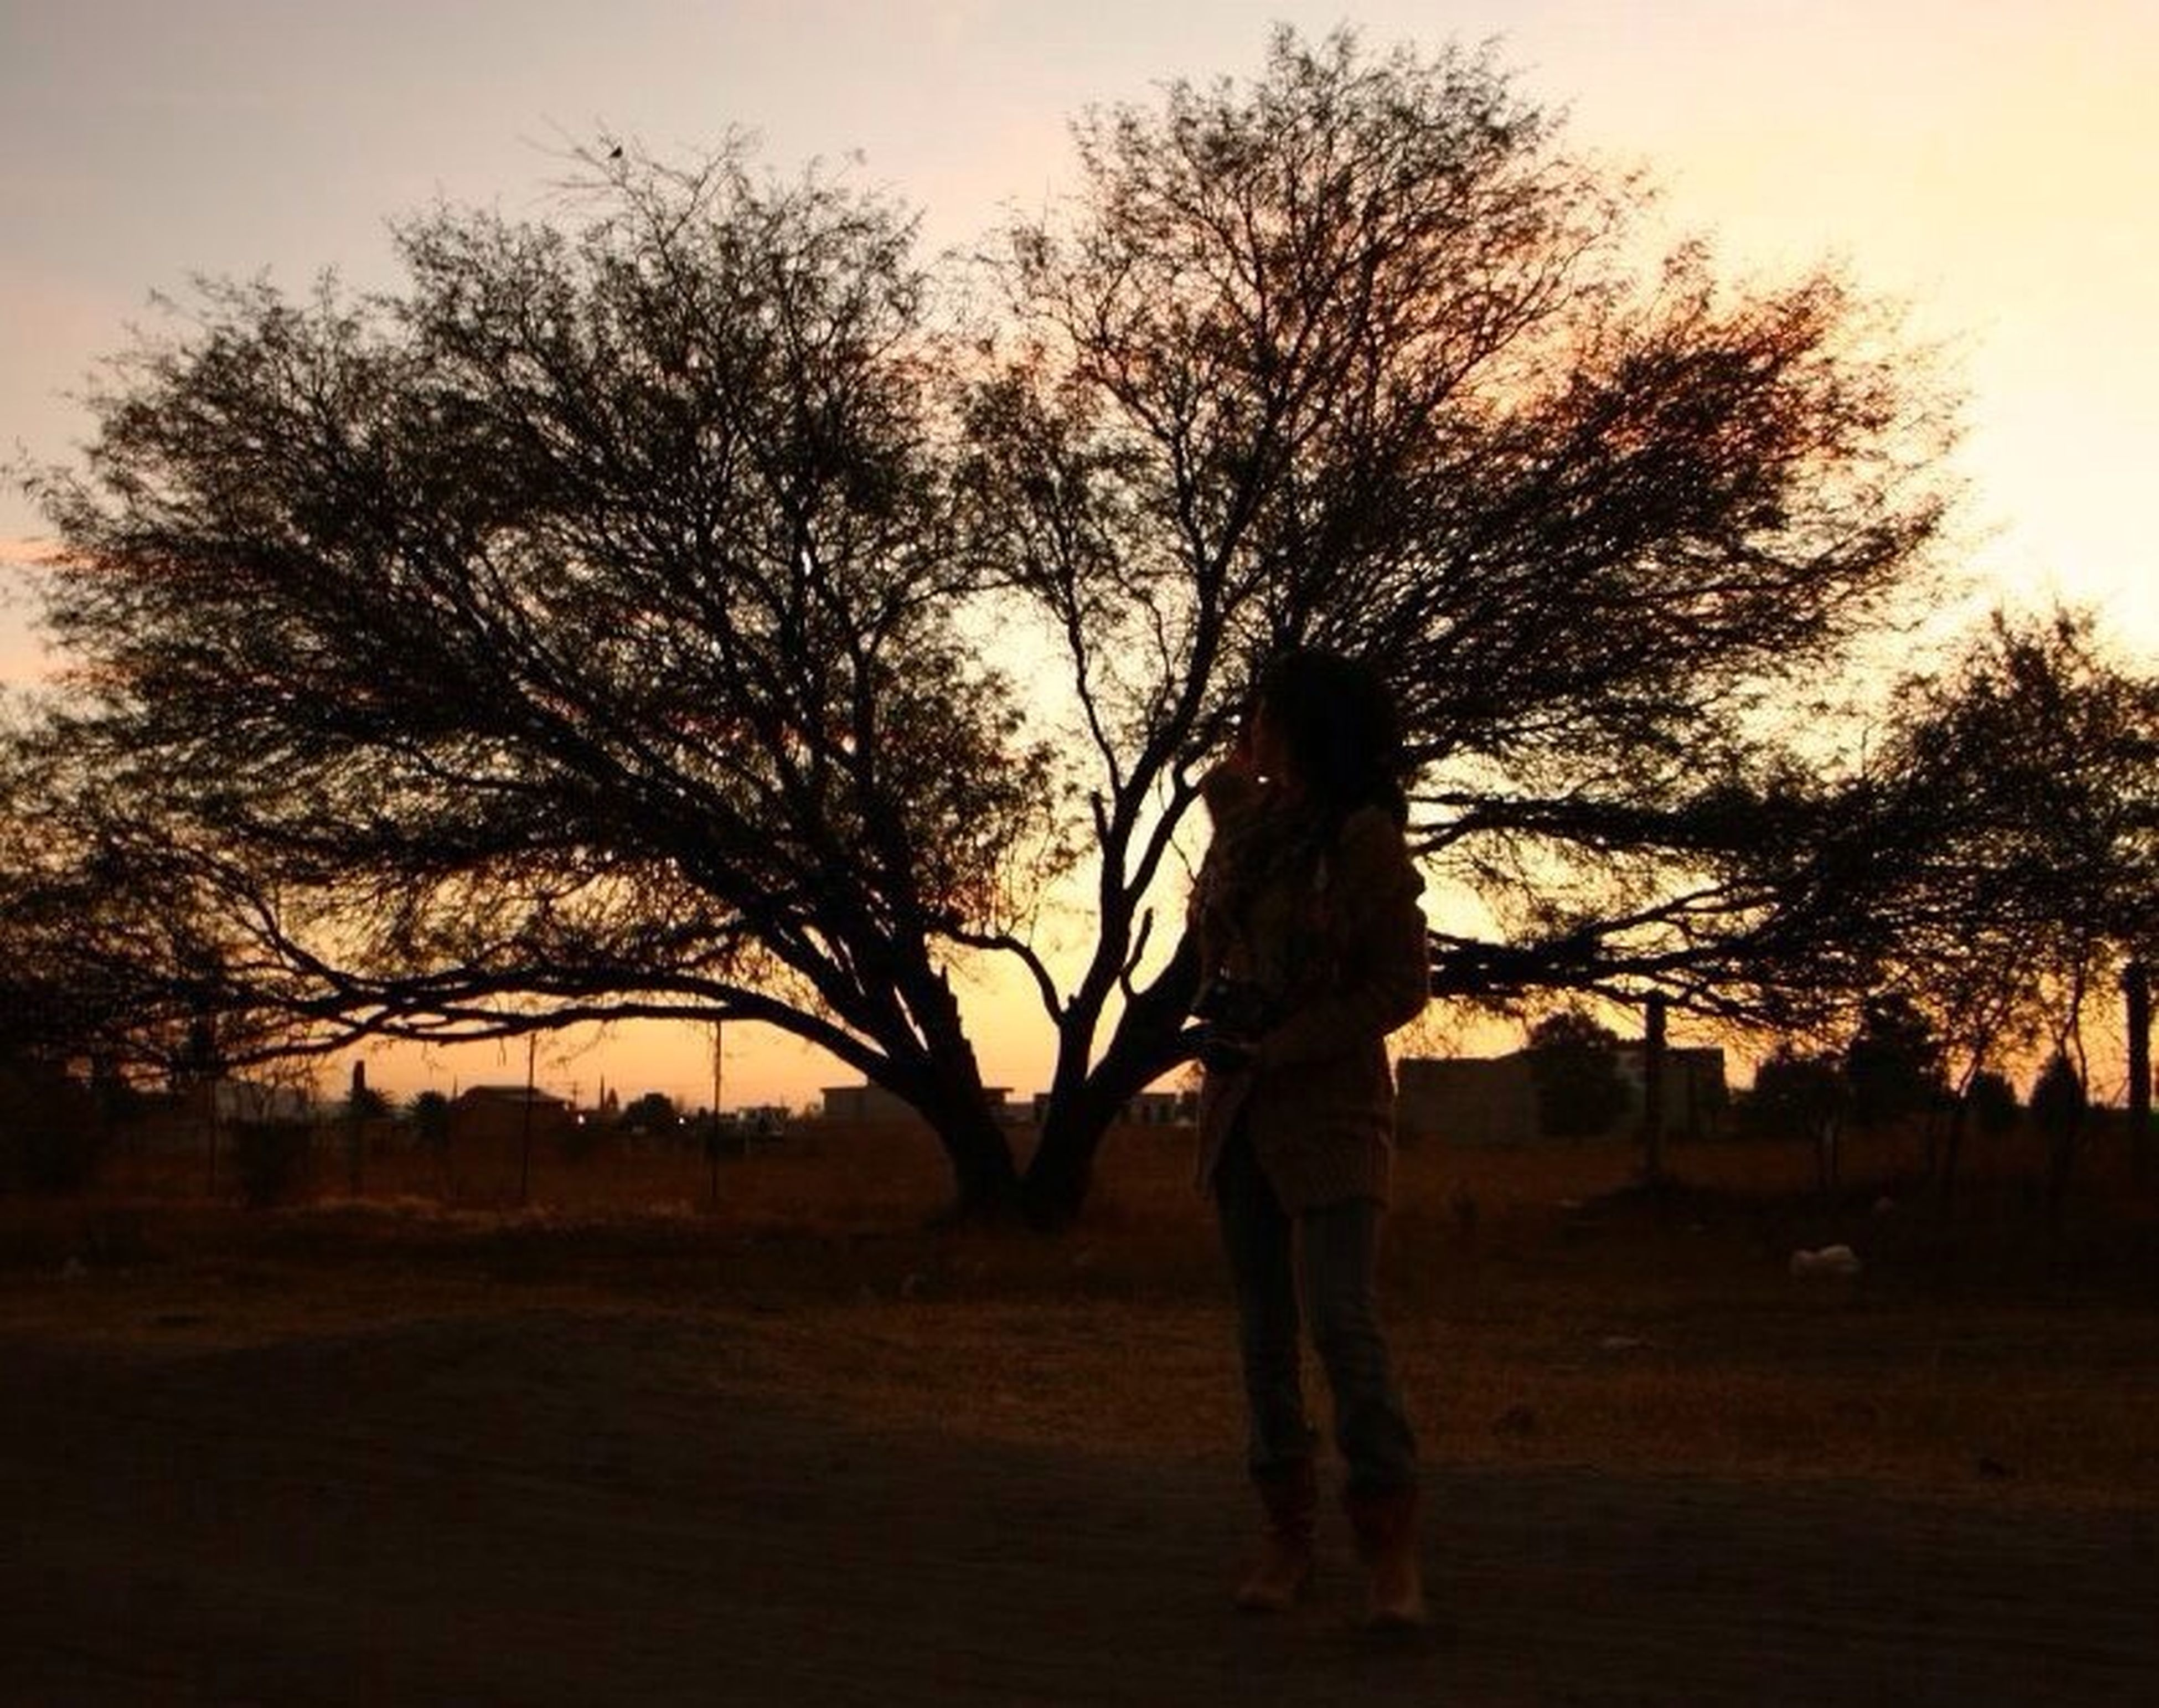 silhouette, tree, sunset, bare tree, field, lifestyles, tranquility, sky, leisure activity, tranquil scene, nature, landscape, standing, beauty in nature, men, person, scenics, sun